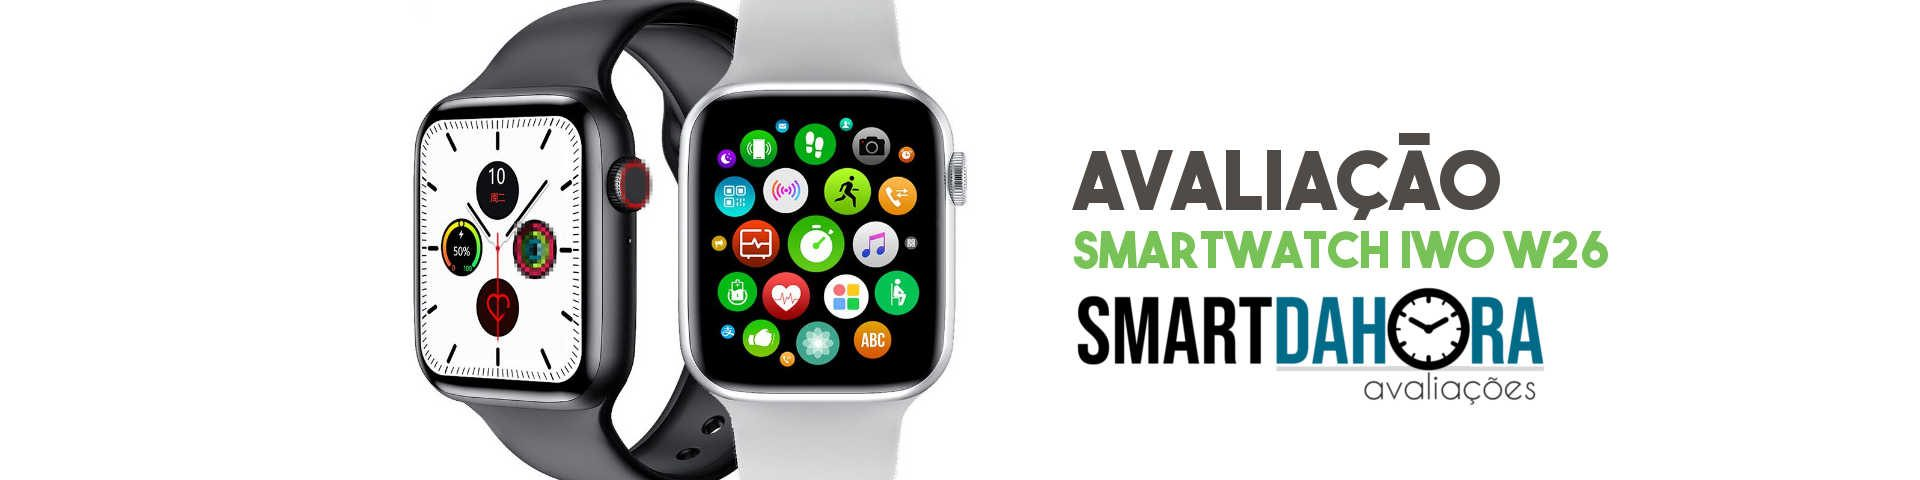 avaliacao w26 smartwatch